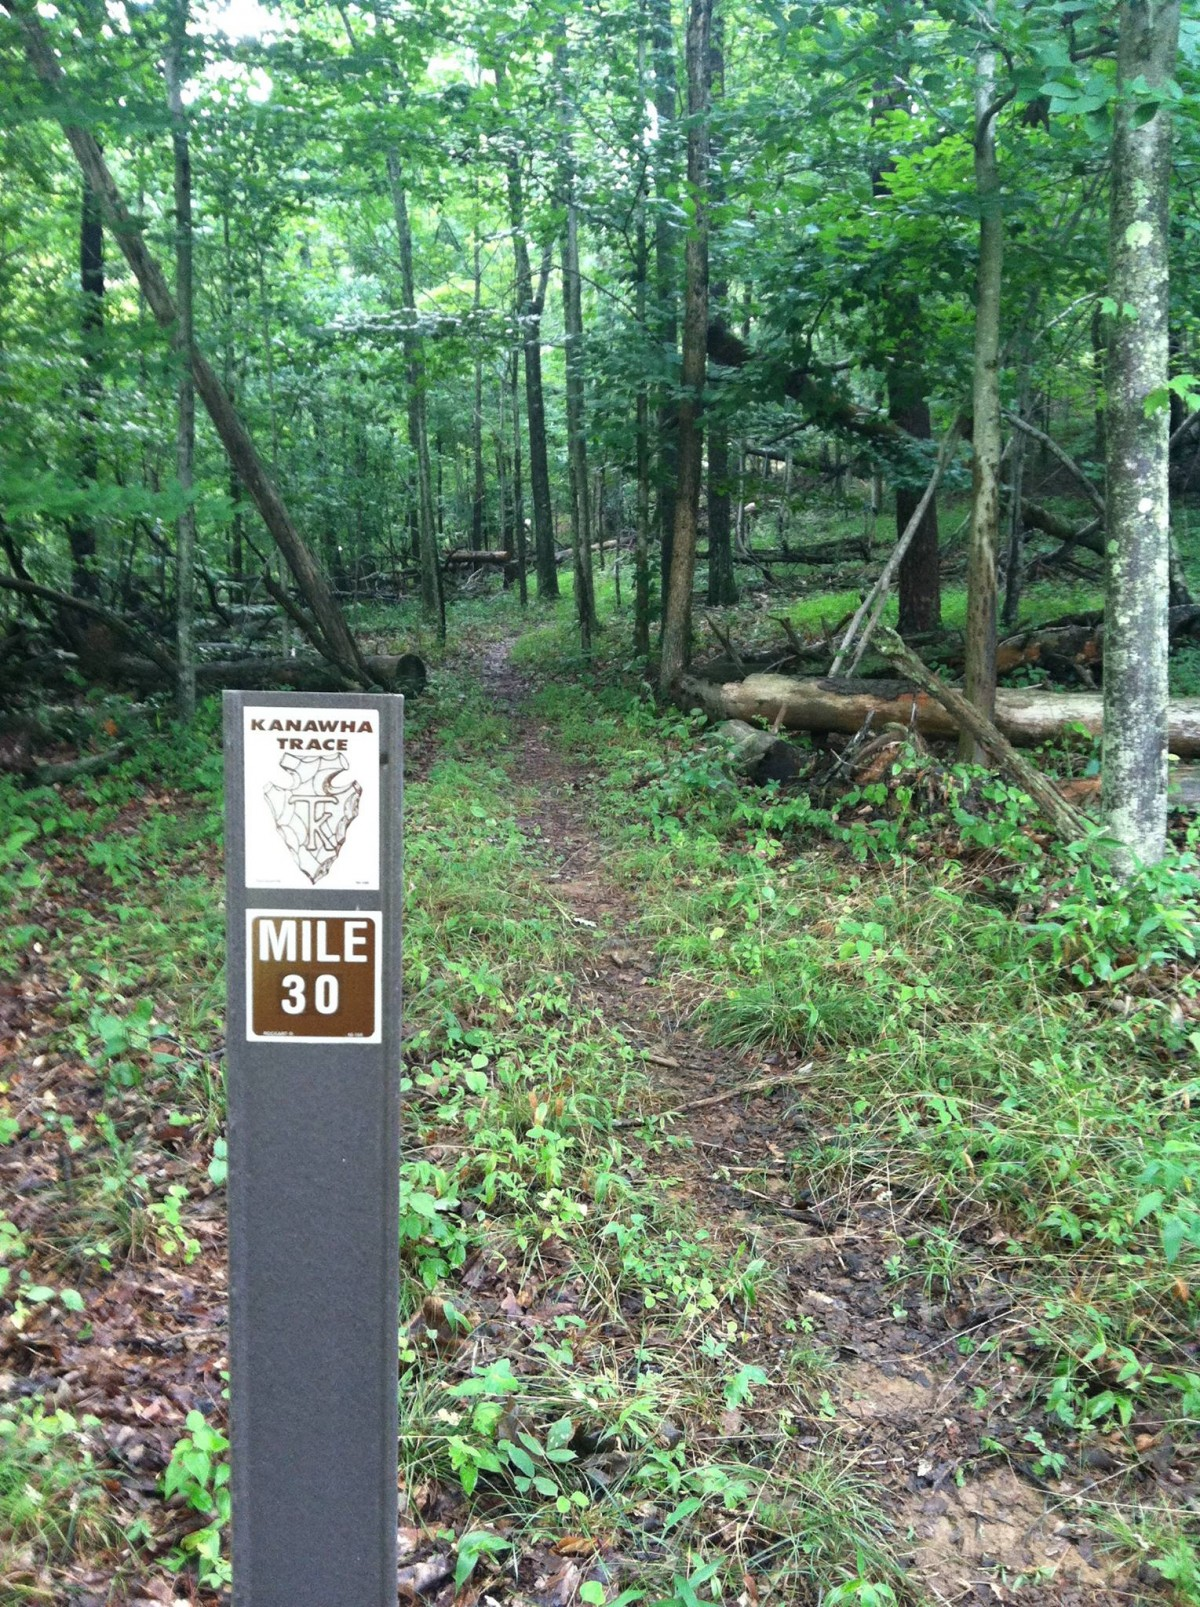 One of the many trail markers.